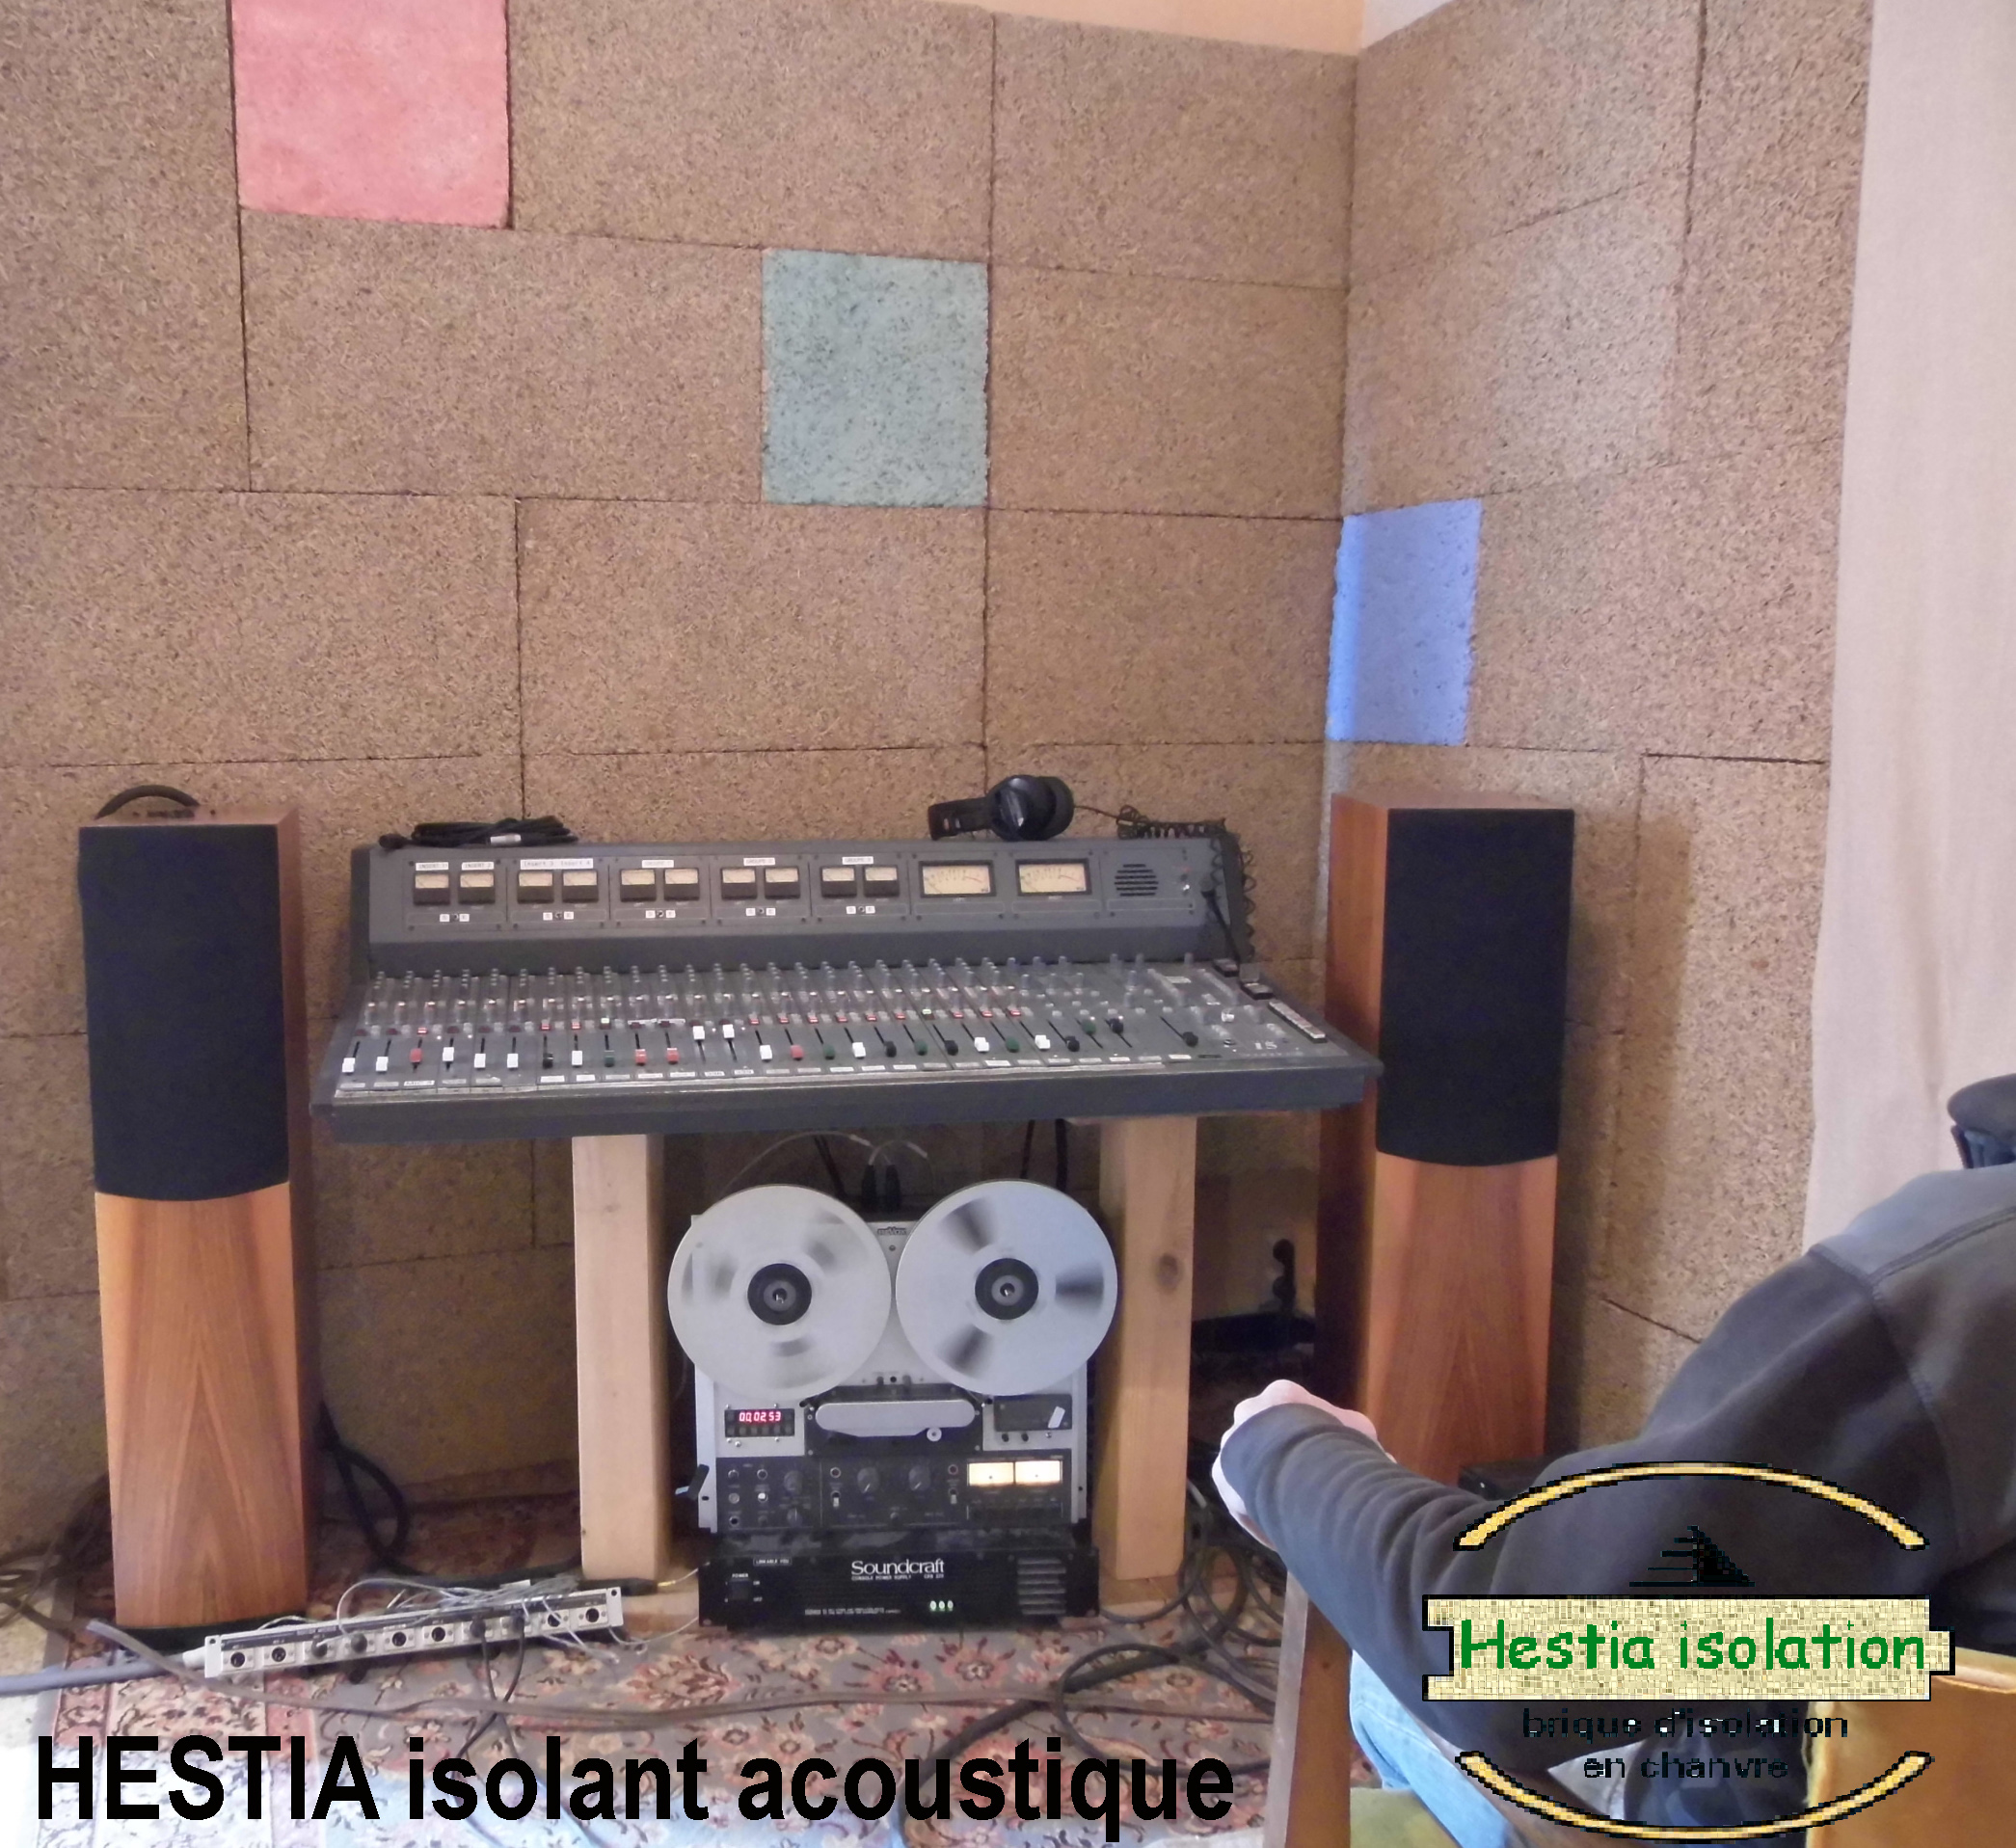 acoustic treatment sound insulation insulation hemp brick block panels tiles panel tile hestia absorption musical room concert rehearsal drums sax piano violin guitar